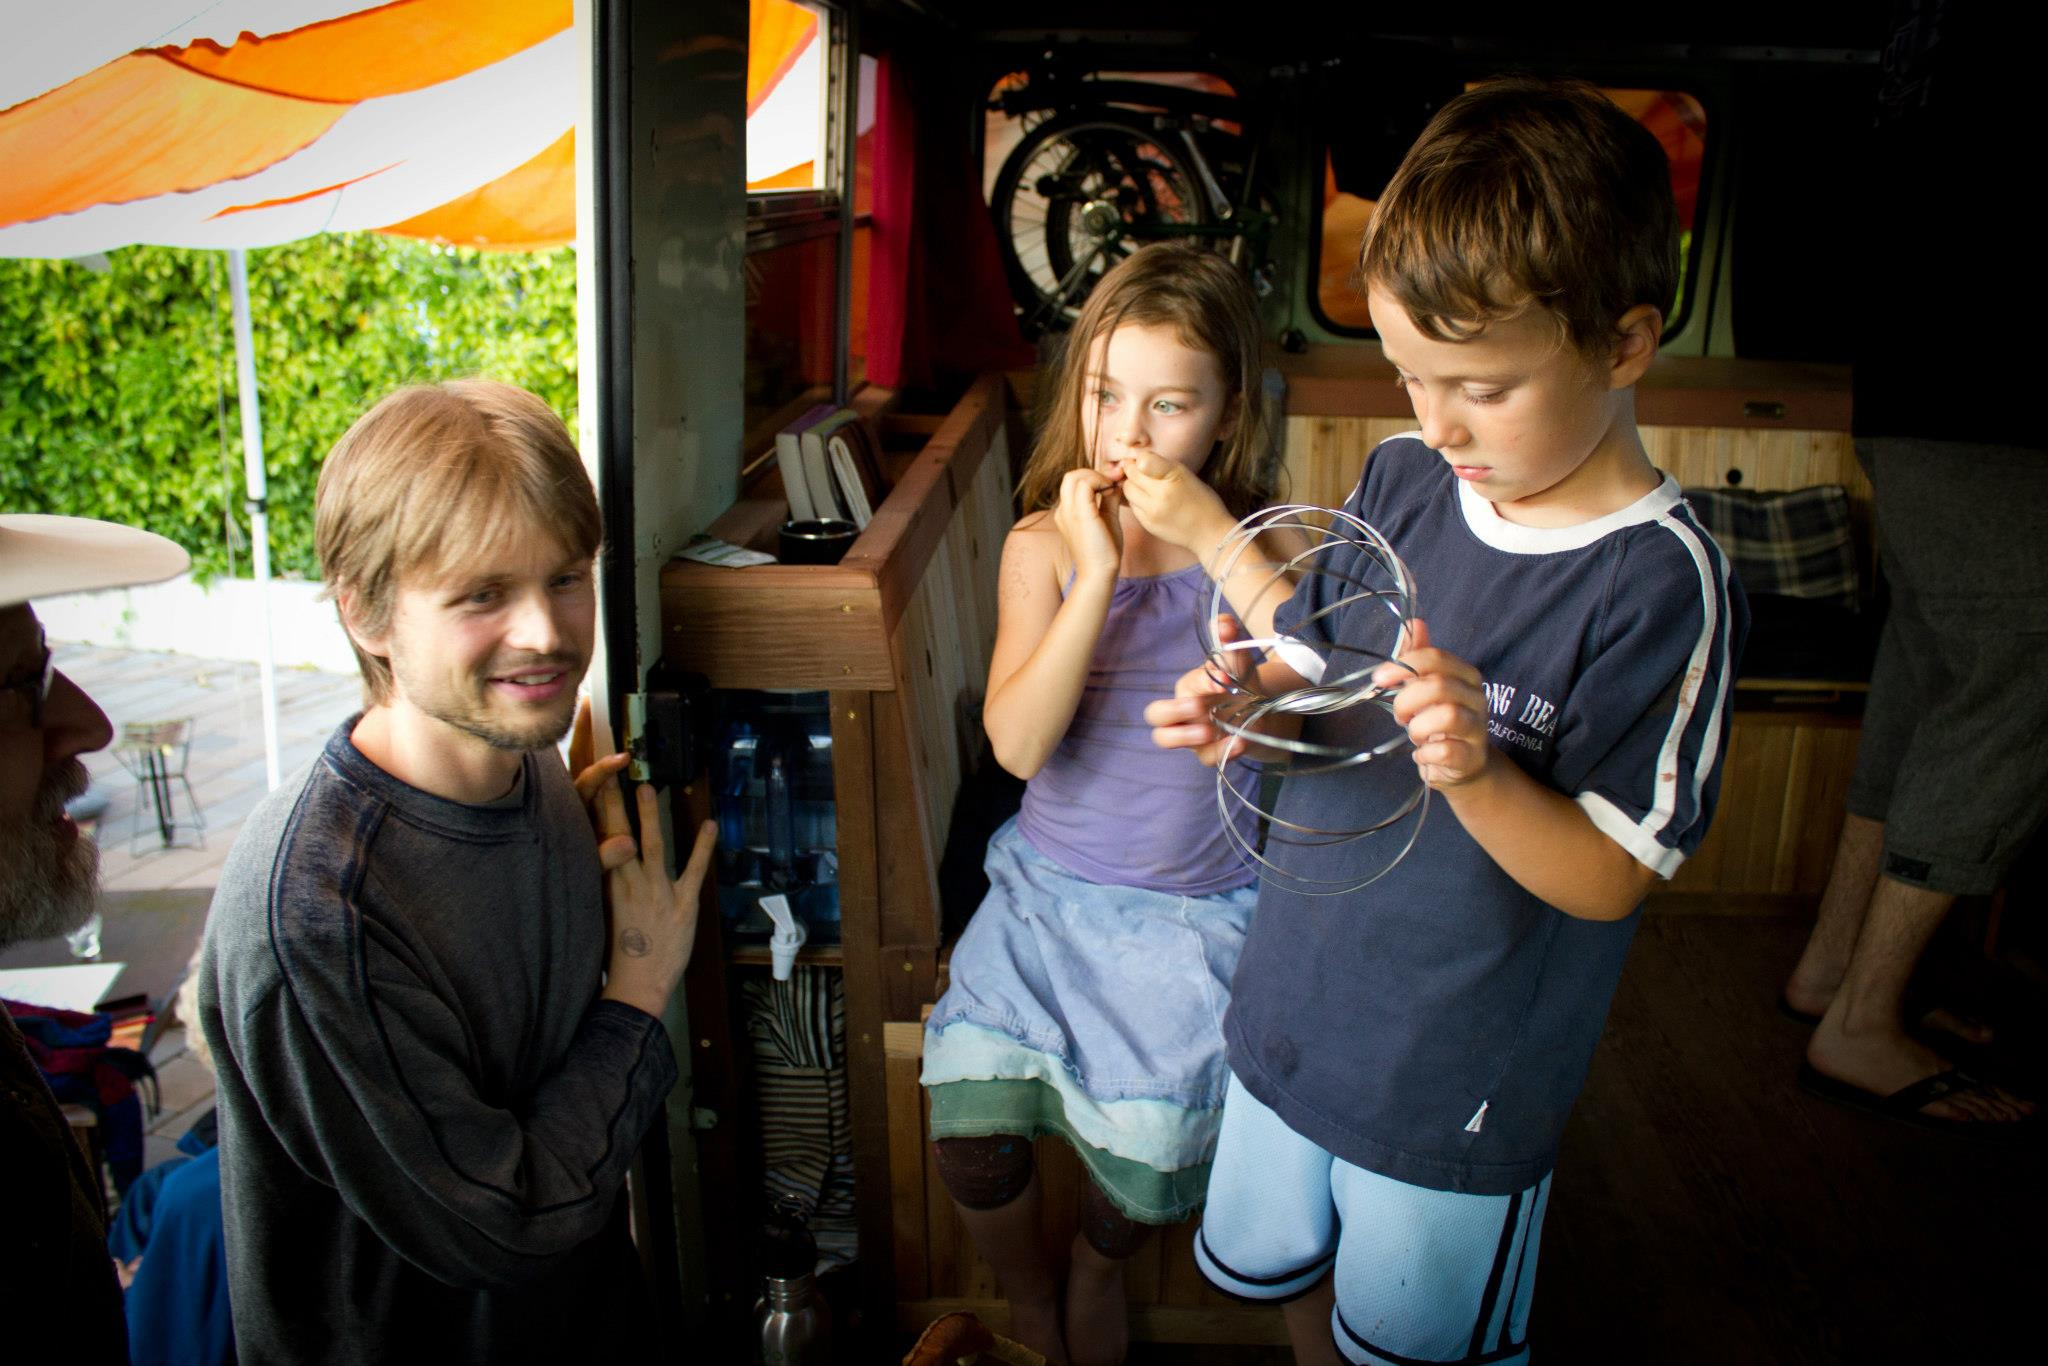 The tea bus became a kid zone at